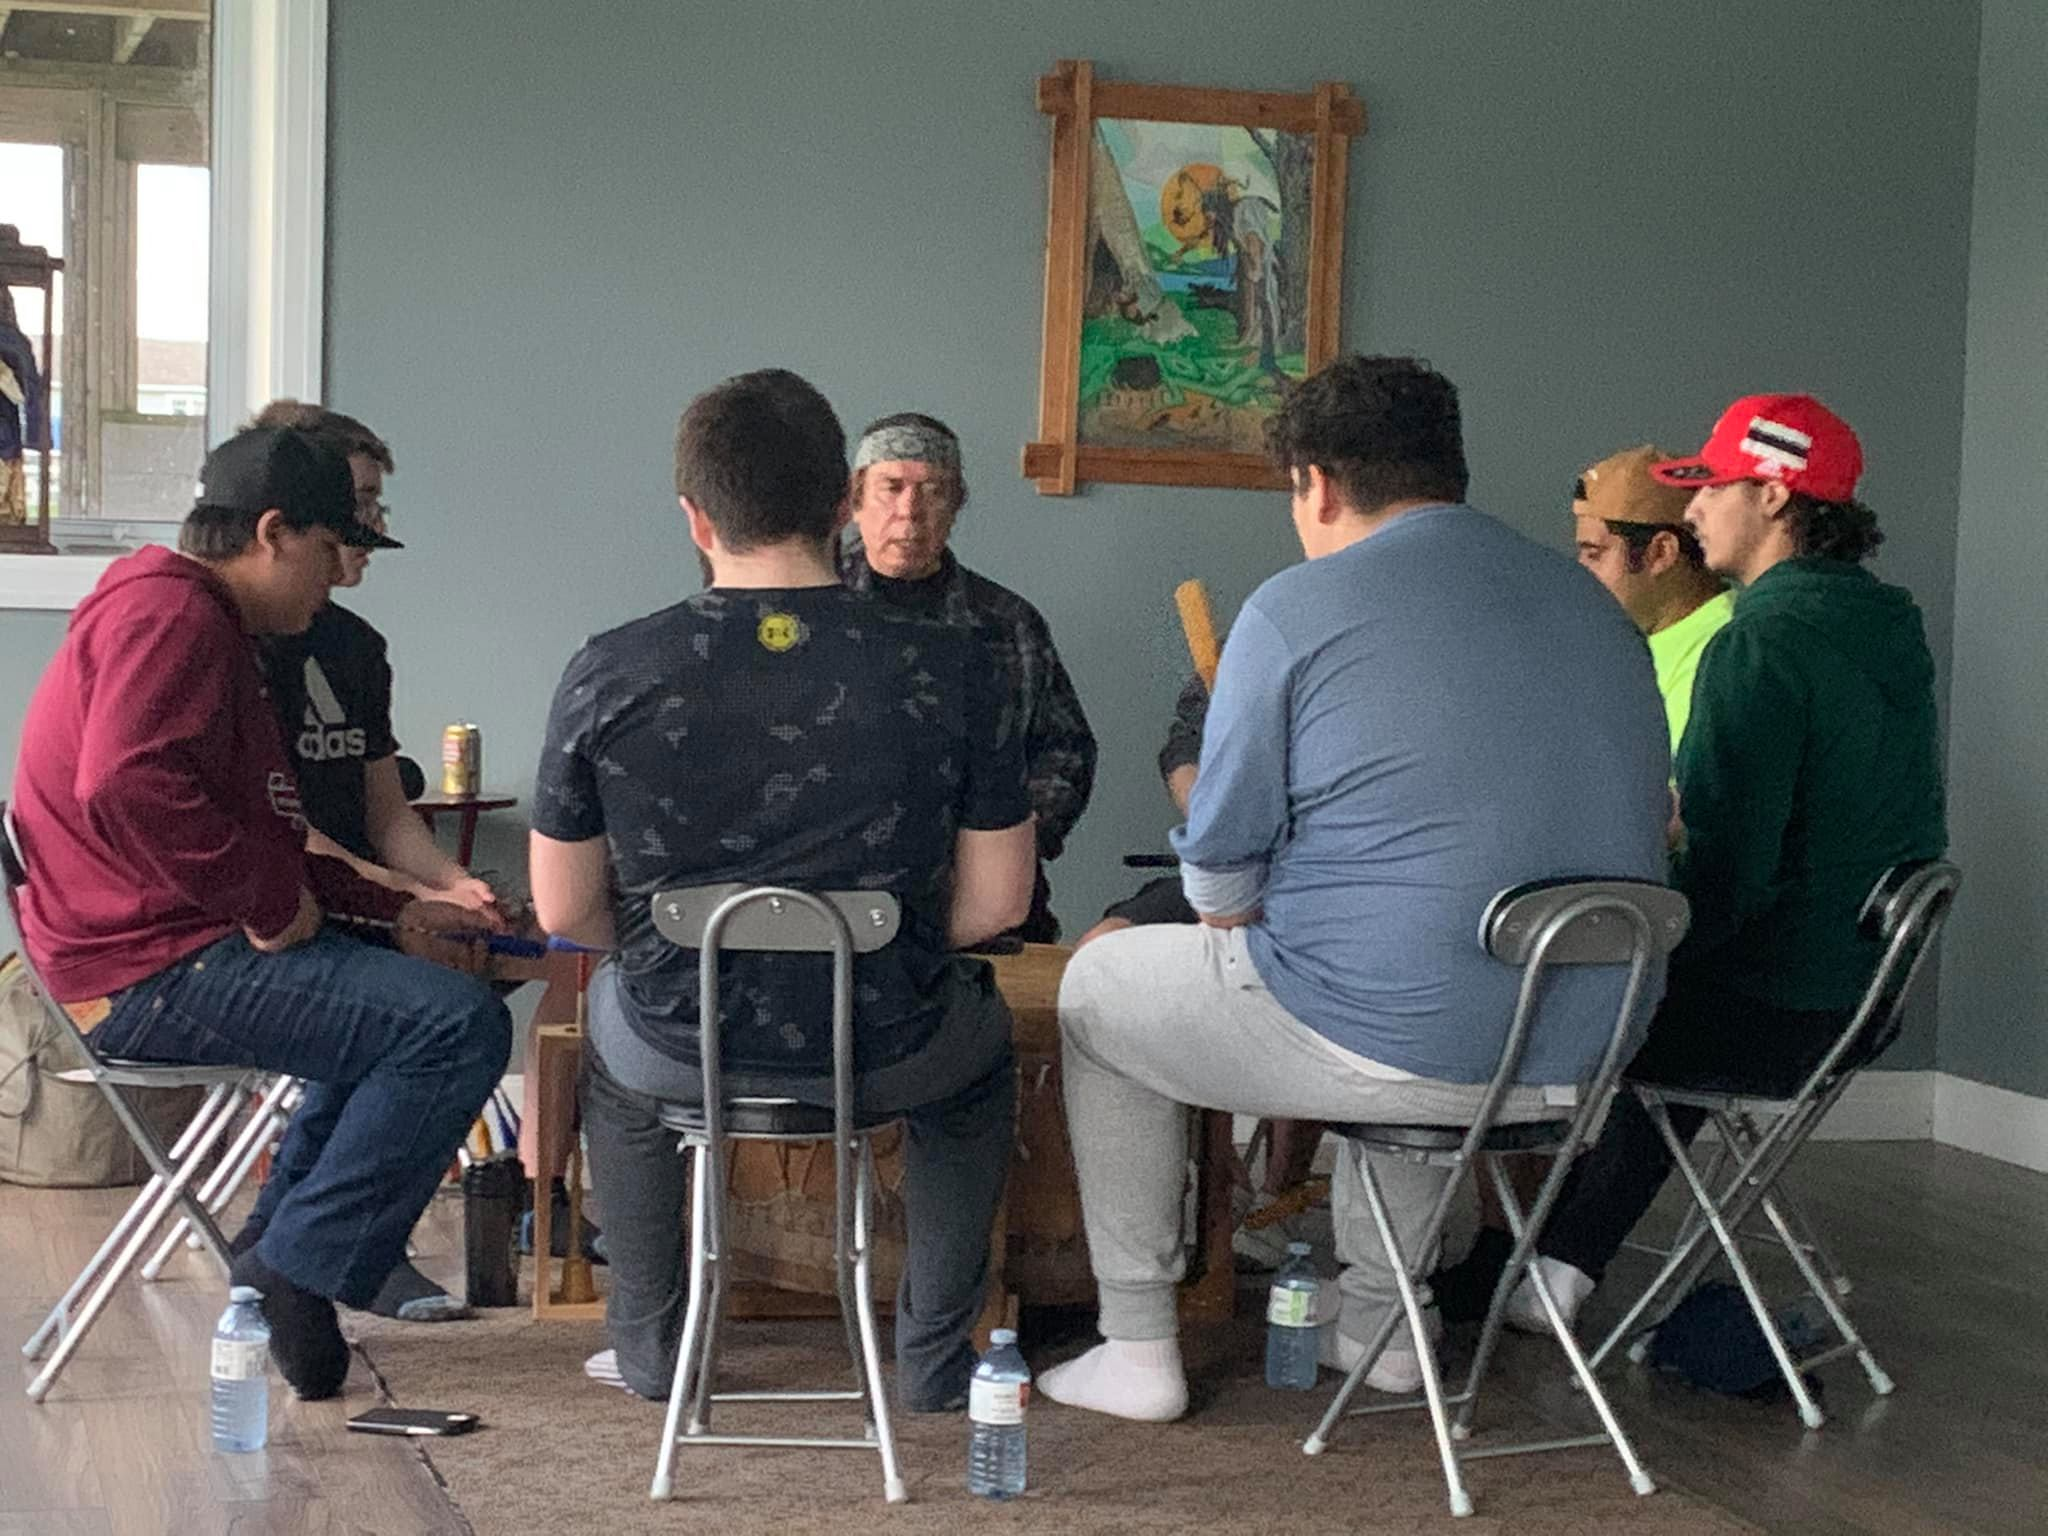 Landmark project looks at cannabis harm reduction in Indigenous communities - Gipto lads